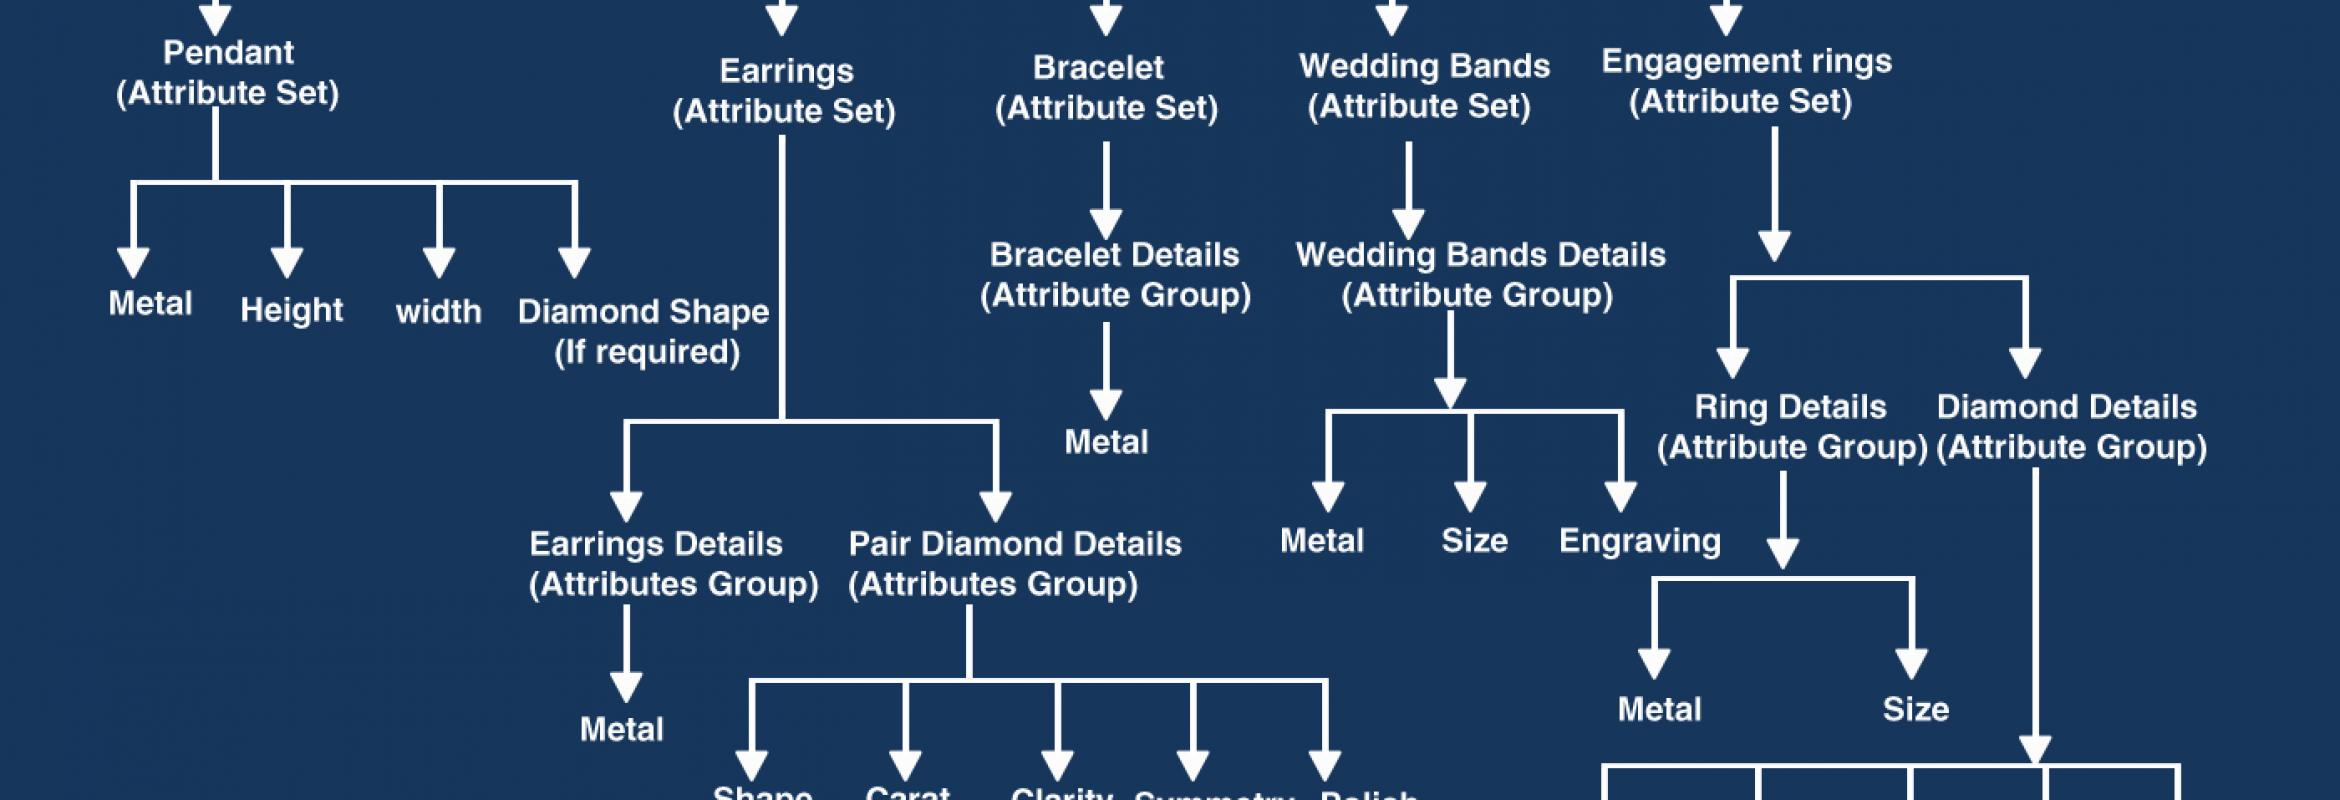 jewellery attribute flow chart